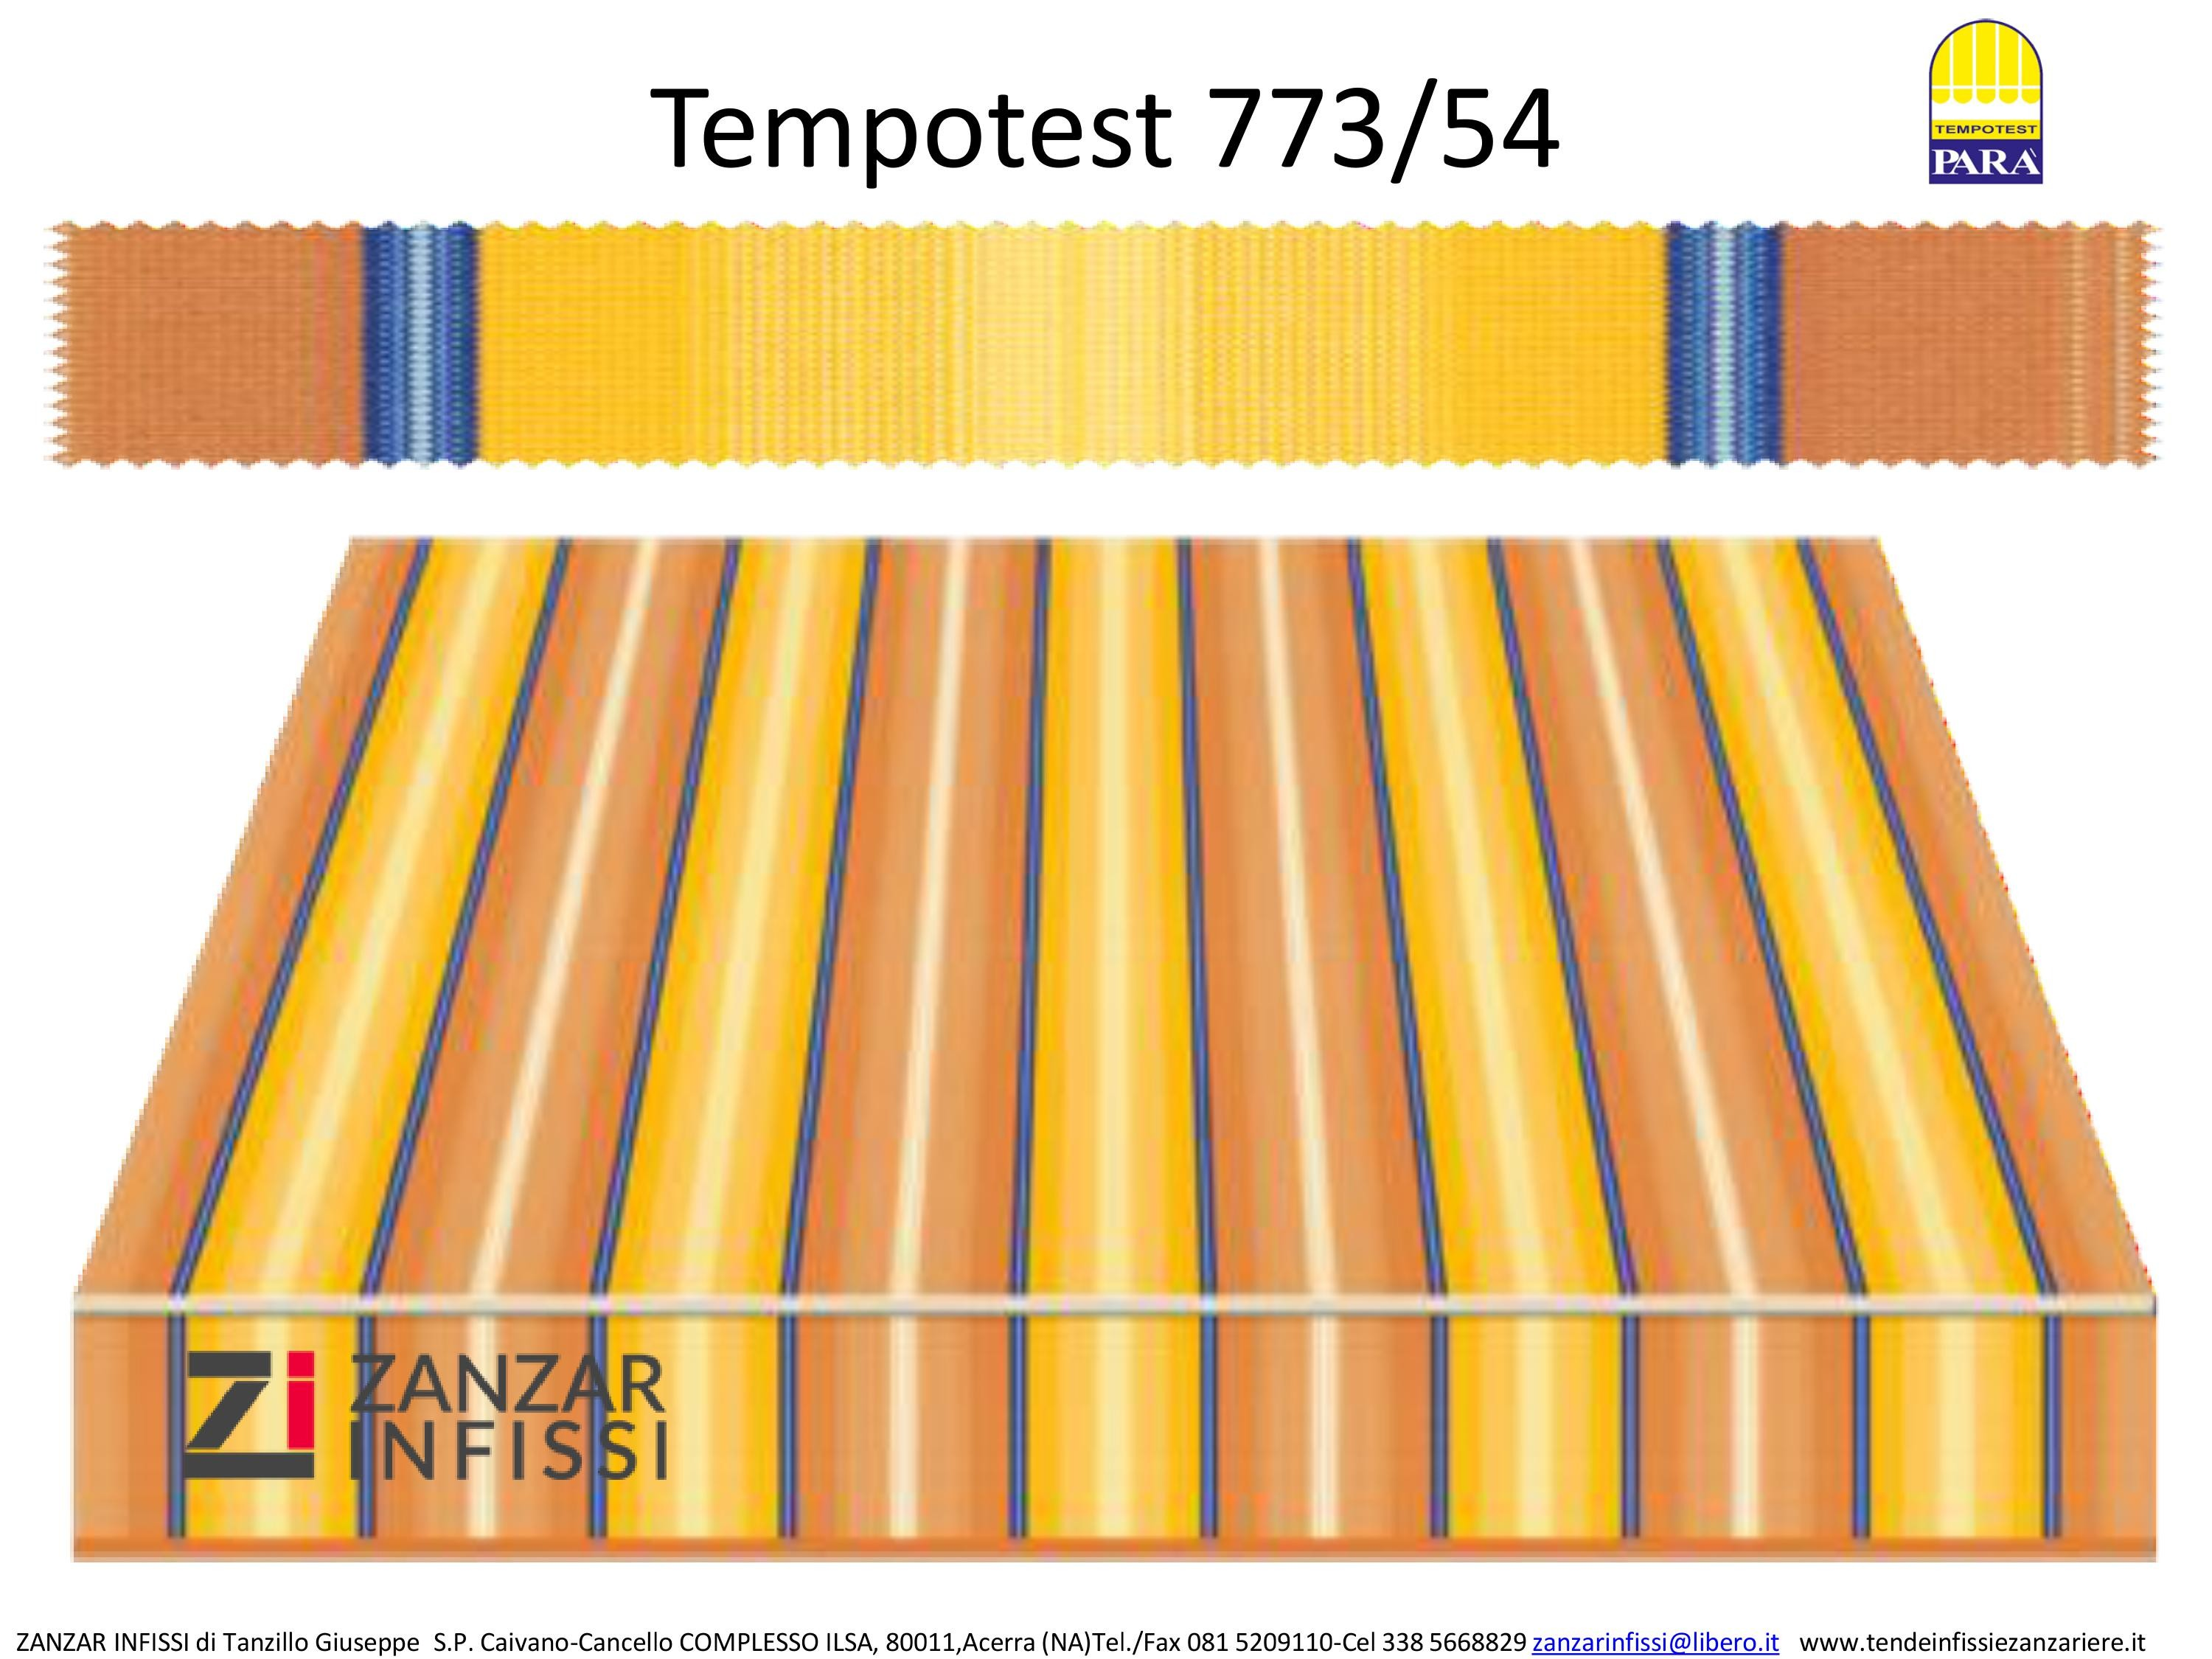 Tempotest 773/54